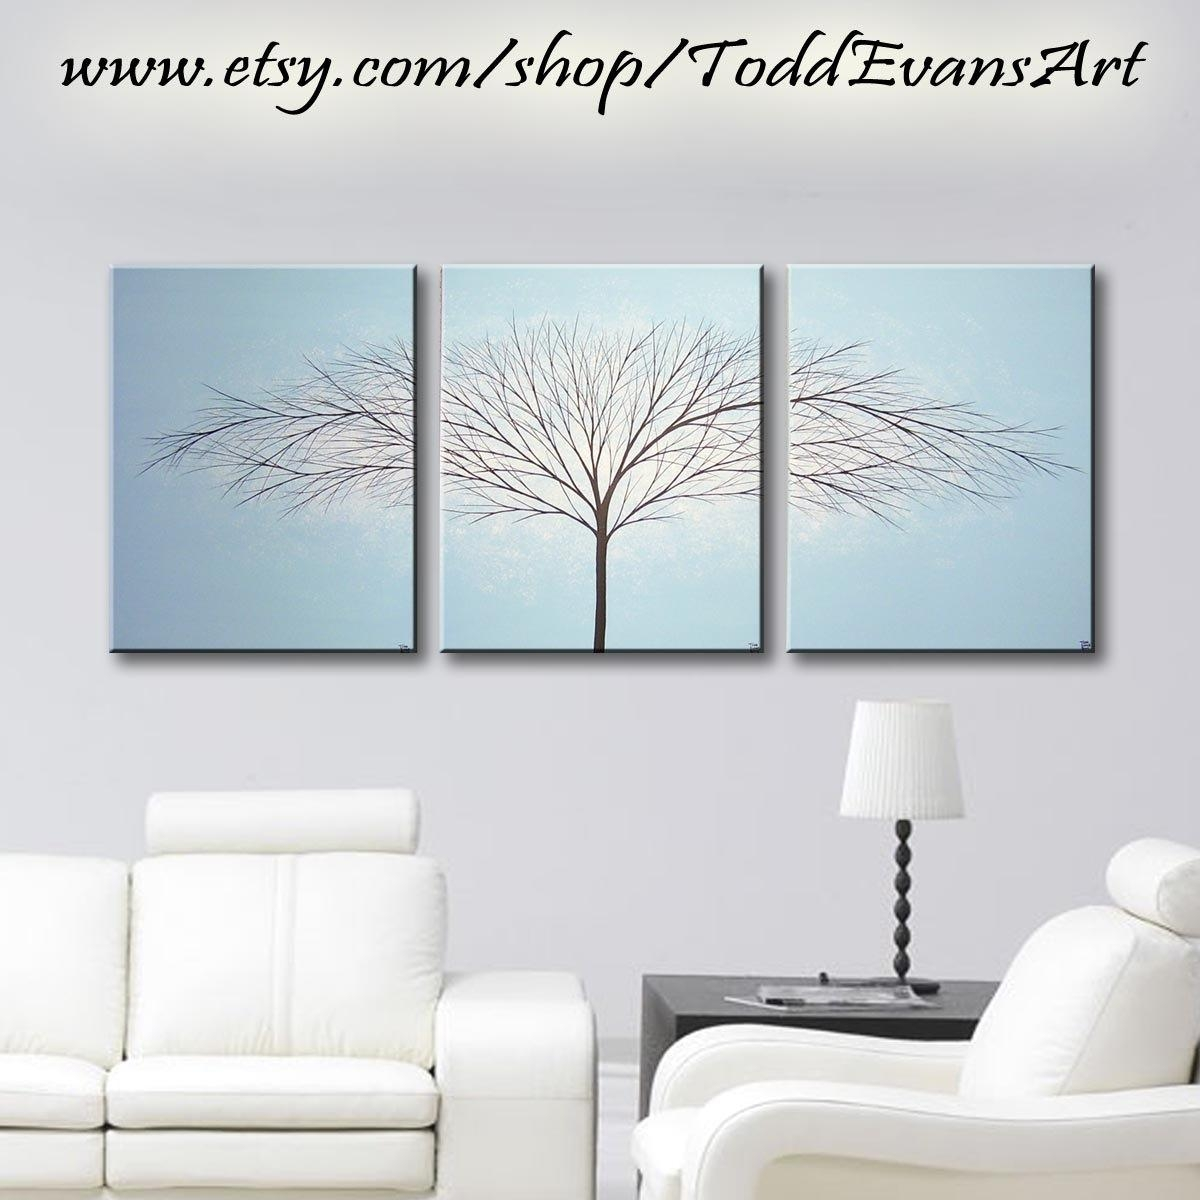 Large Wall Art 3 Piece Canvas Art Bedroom Wall Decor Tree Of Intended For Three Piece Canvas Wall Art (Image 13 of 20)